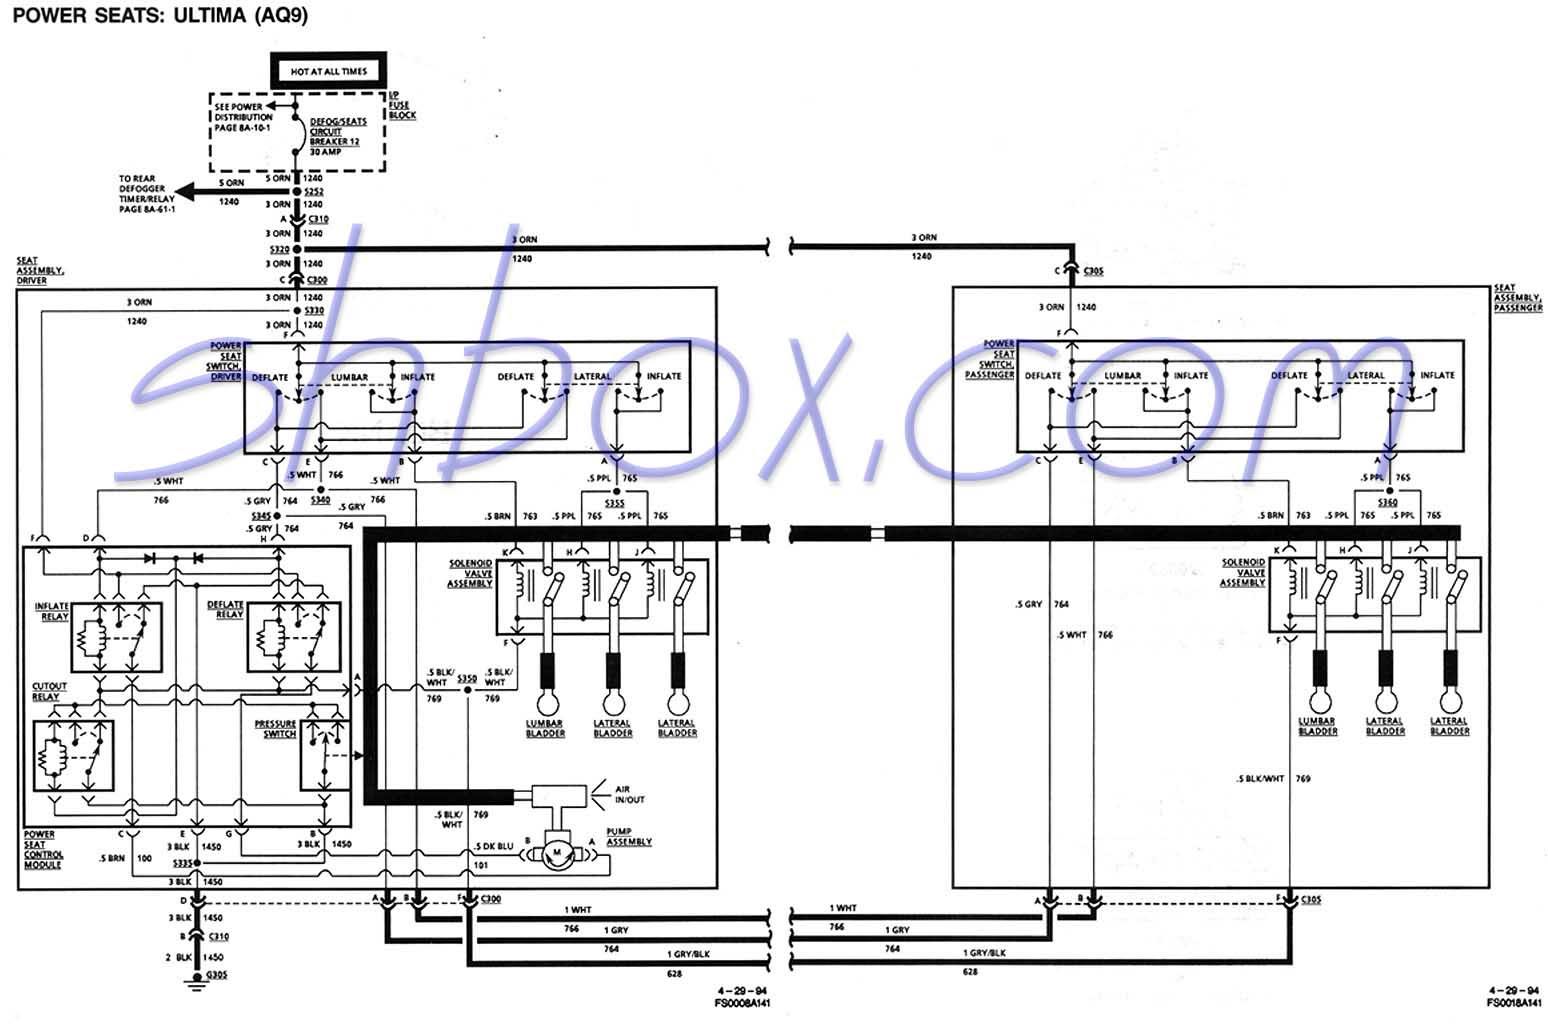 Stereo Wiring Diagram Pontiac Grand Am 2002 Stratocaster Wiring Diagram 1975 For Wiring Diagram Schematics